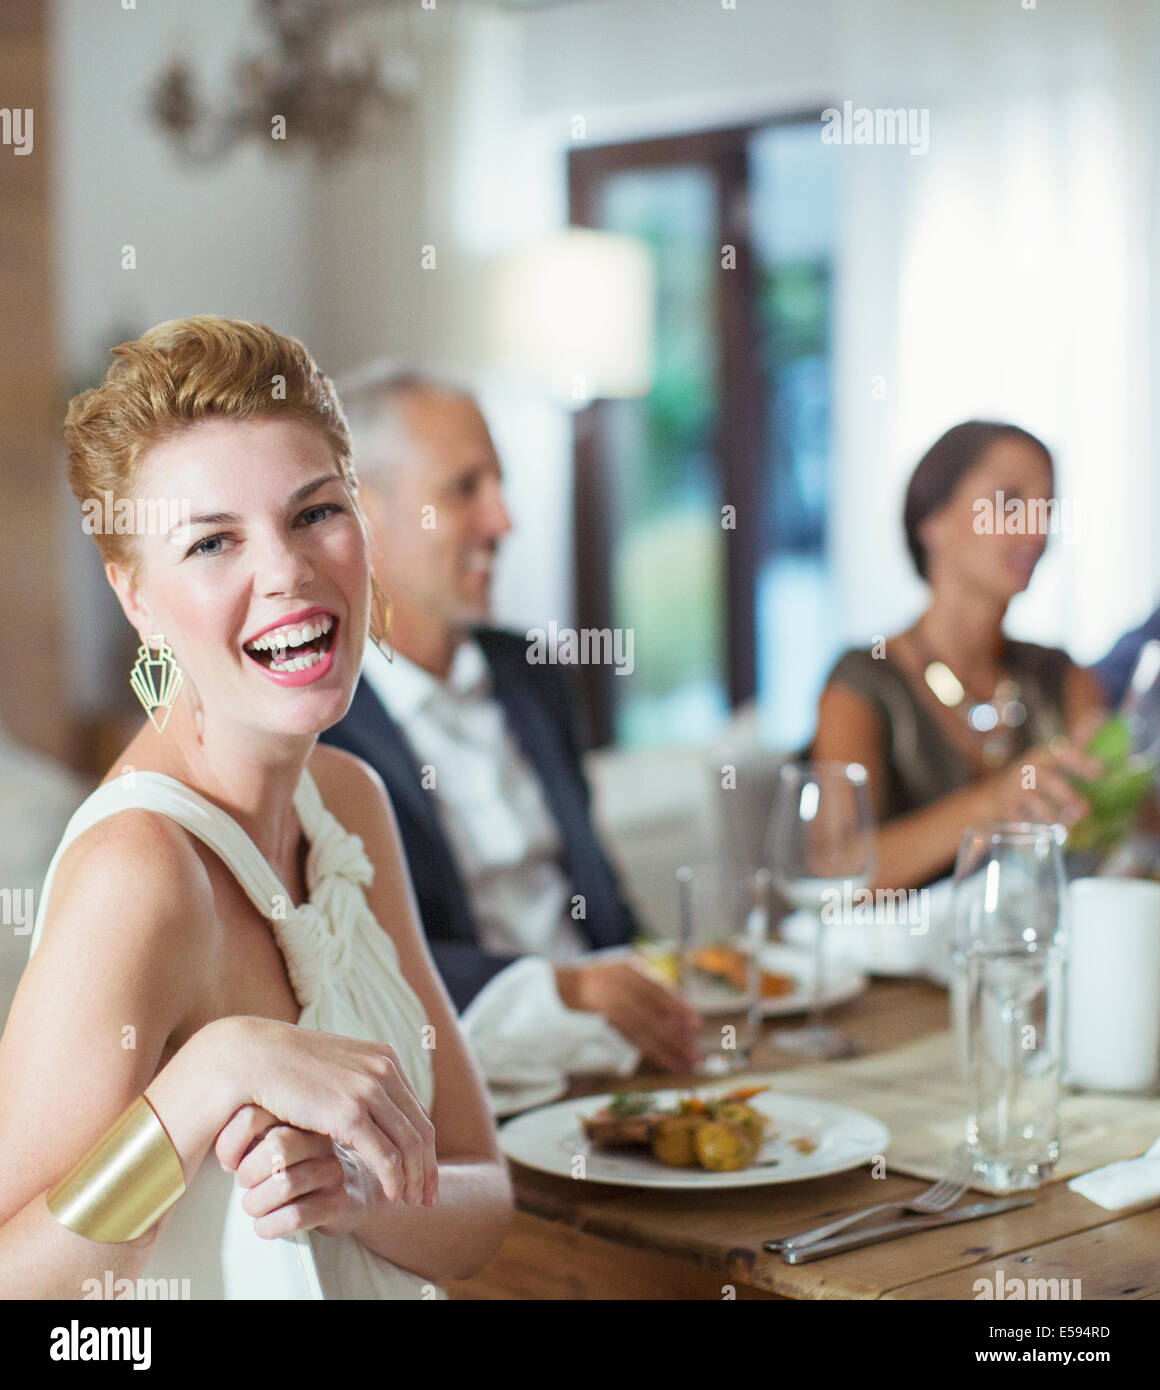 Woman laughing at dinner party Banque D'Images